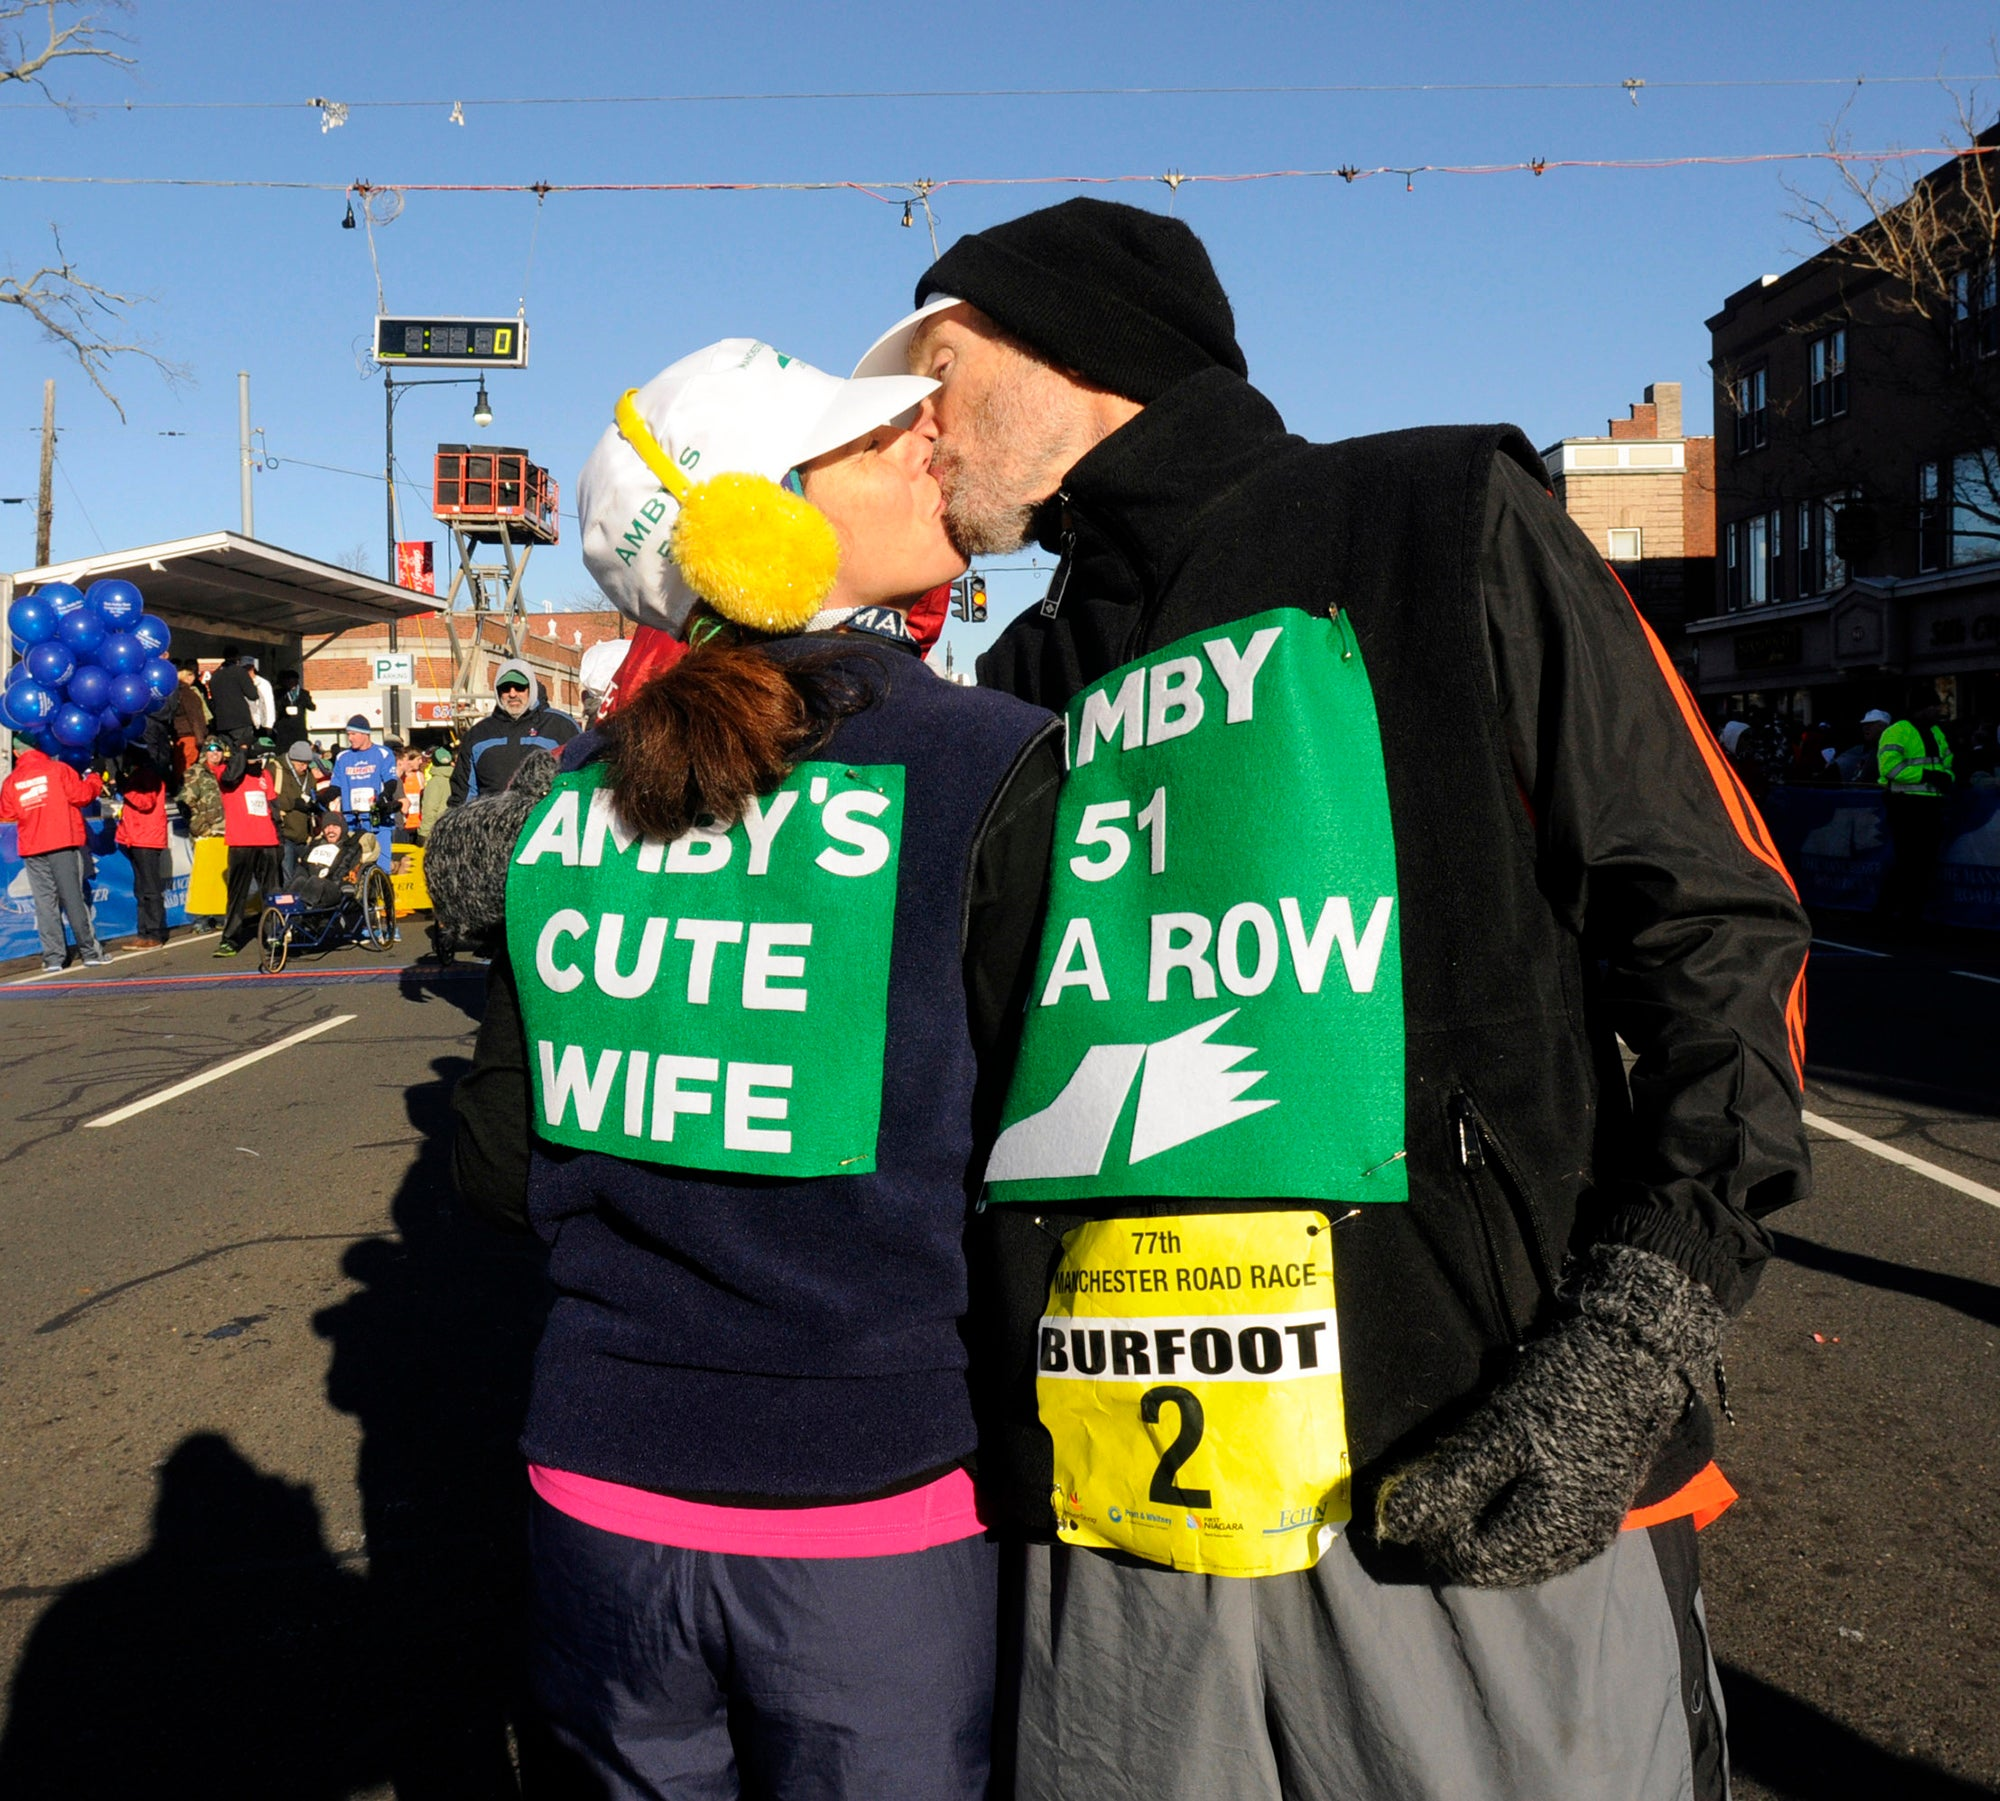 Amby Burfoot gets a kiss from his wife Cristina as he prepares for his 51 st Manchester Road Race in a row in 2013, setting the all time record.